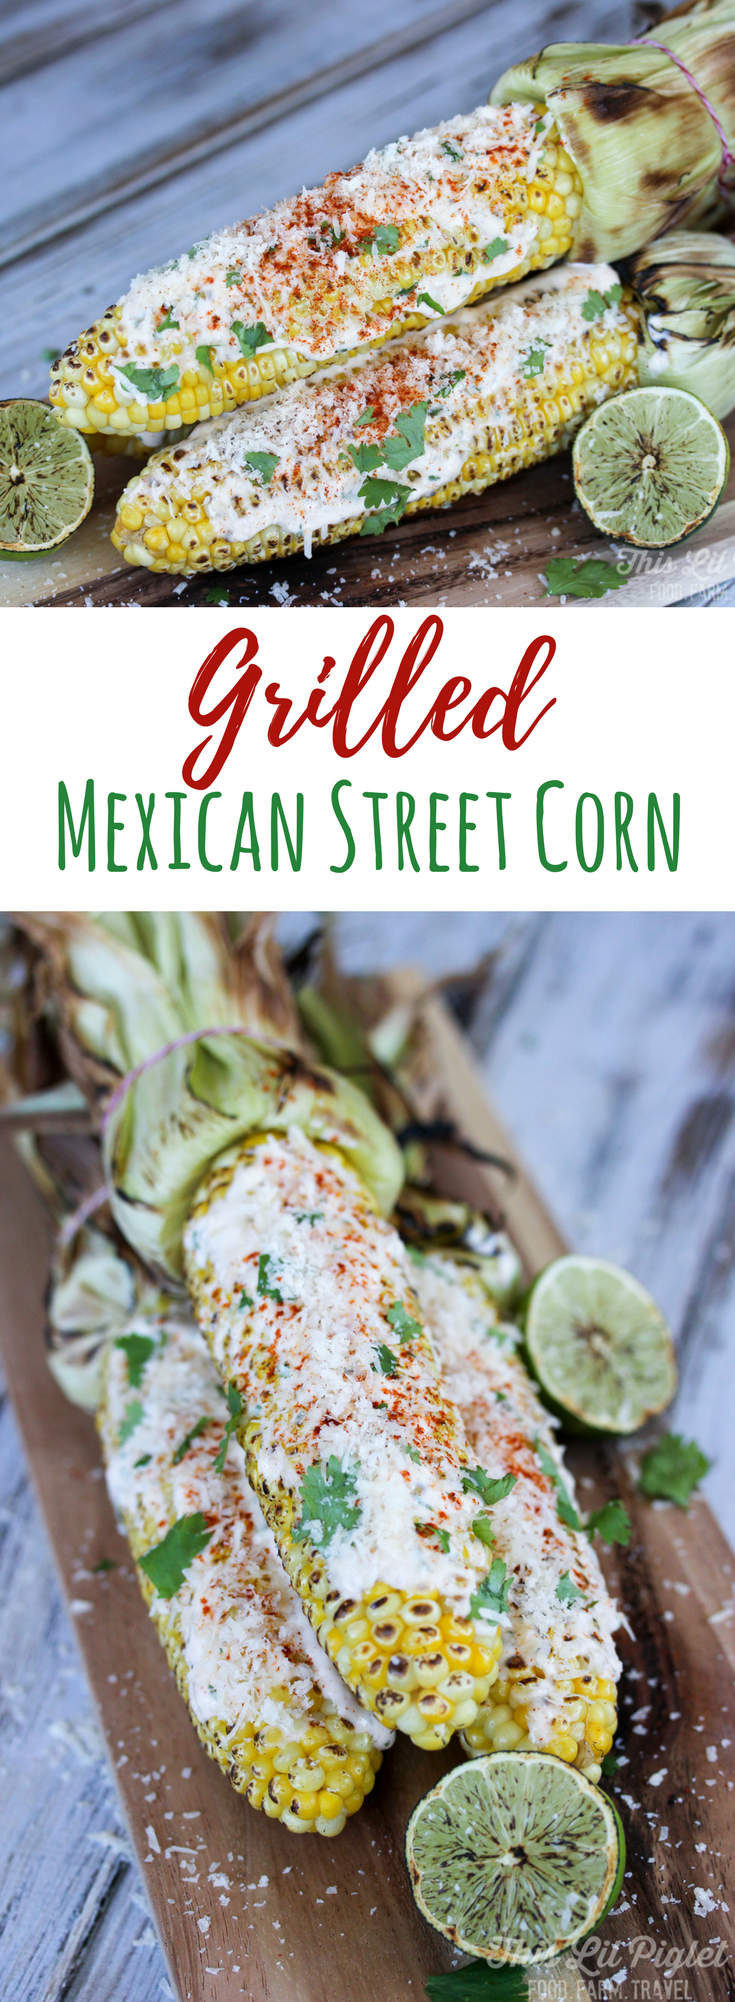 Grilled Mexican Street Corn Cinco de Mayo // thislilpiglet.net